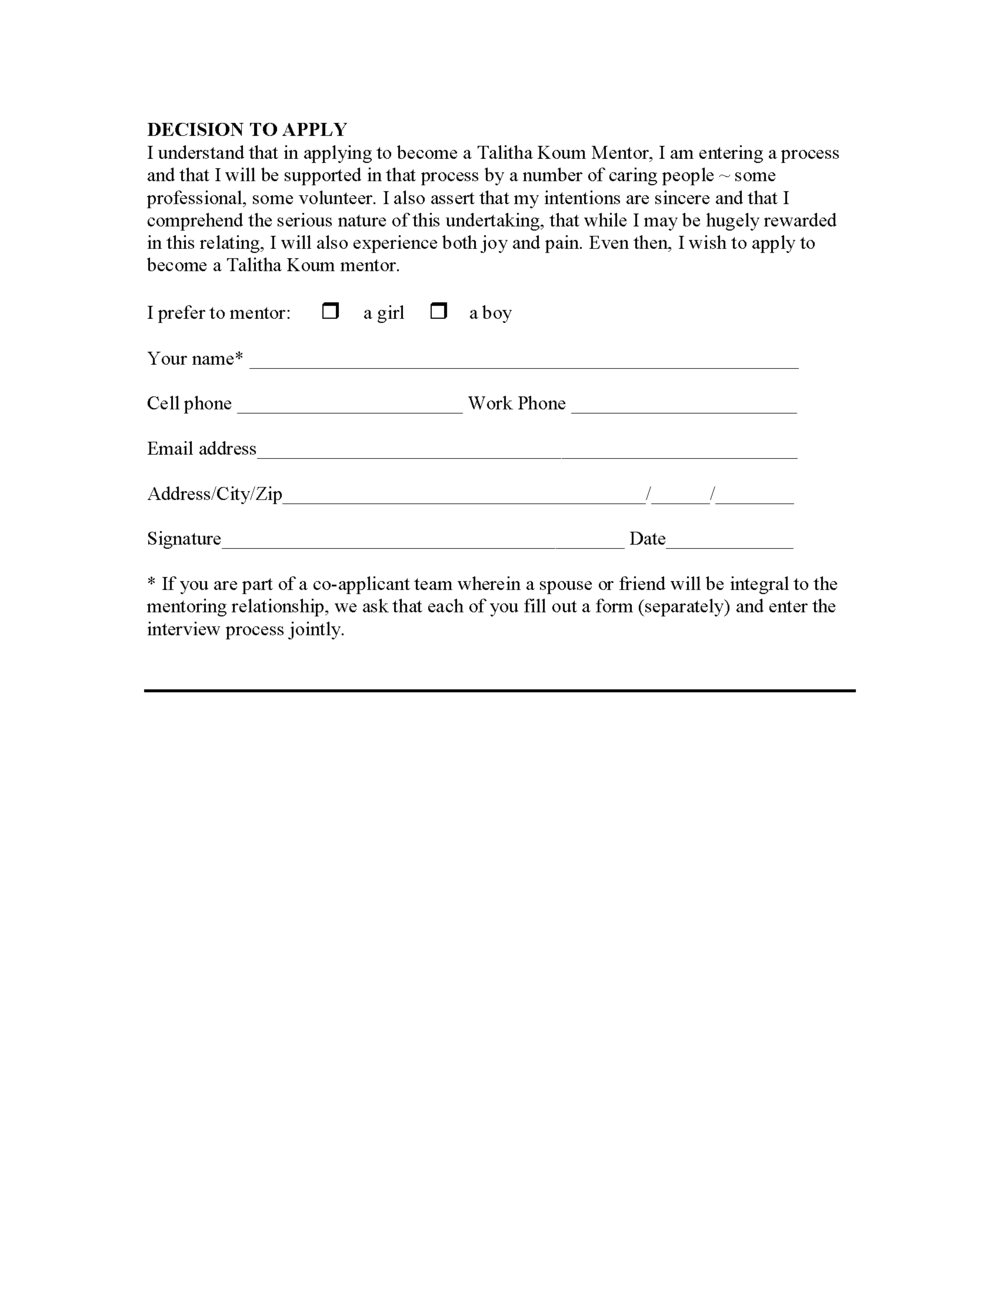 Talitha Koum Mentor Application_Page_4.png